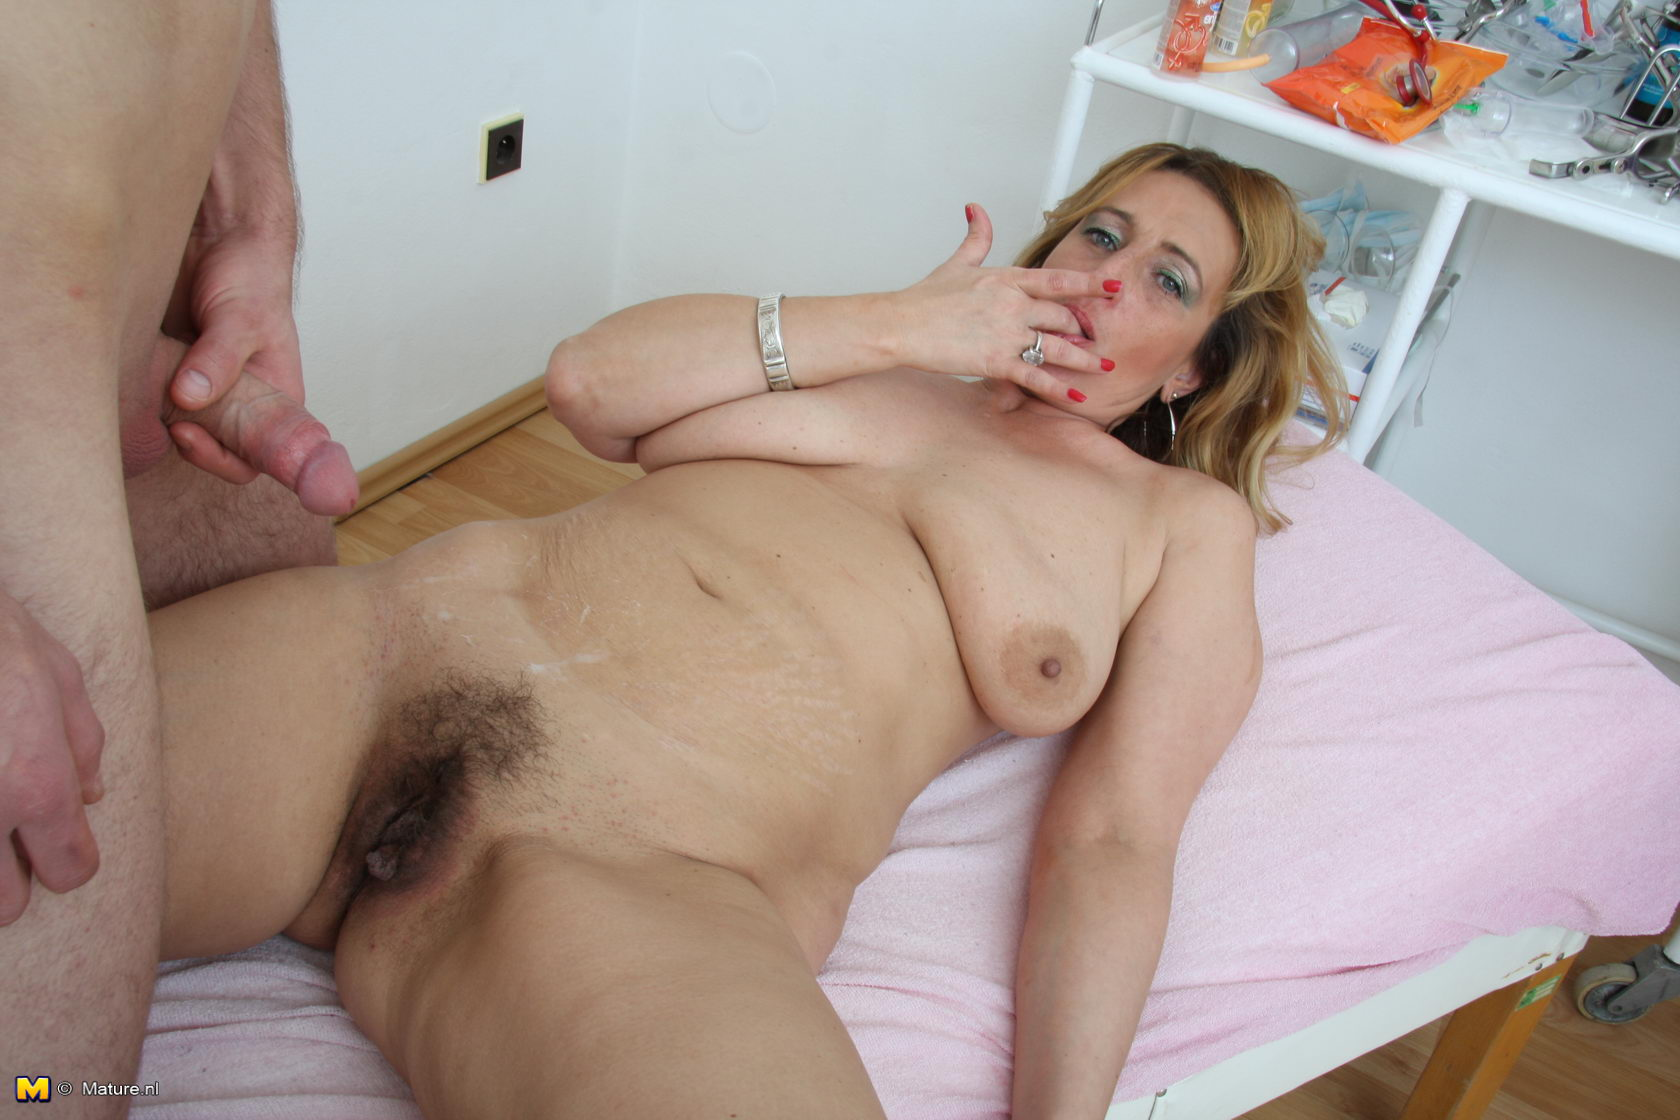 LUELLA: Old Milf Tube Videos